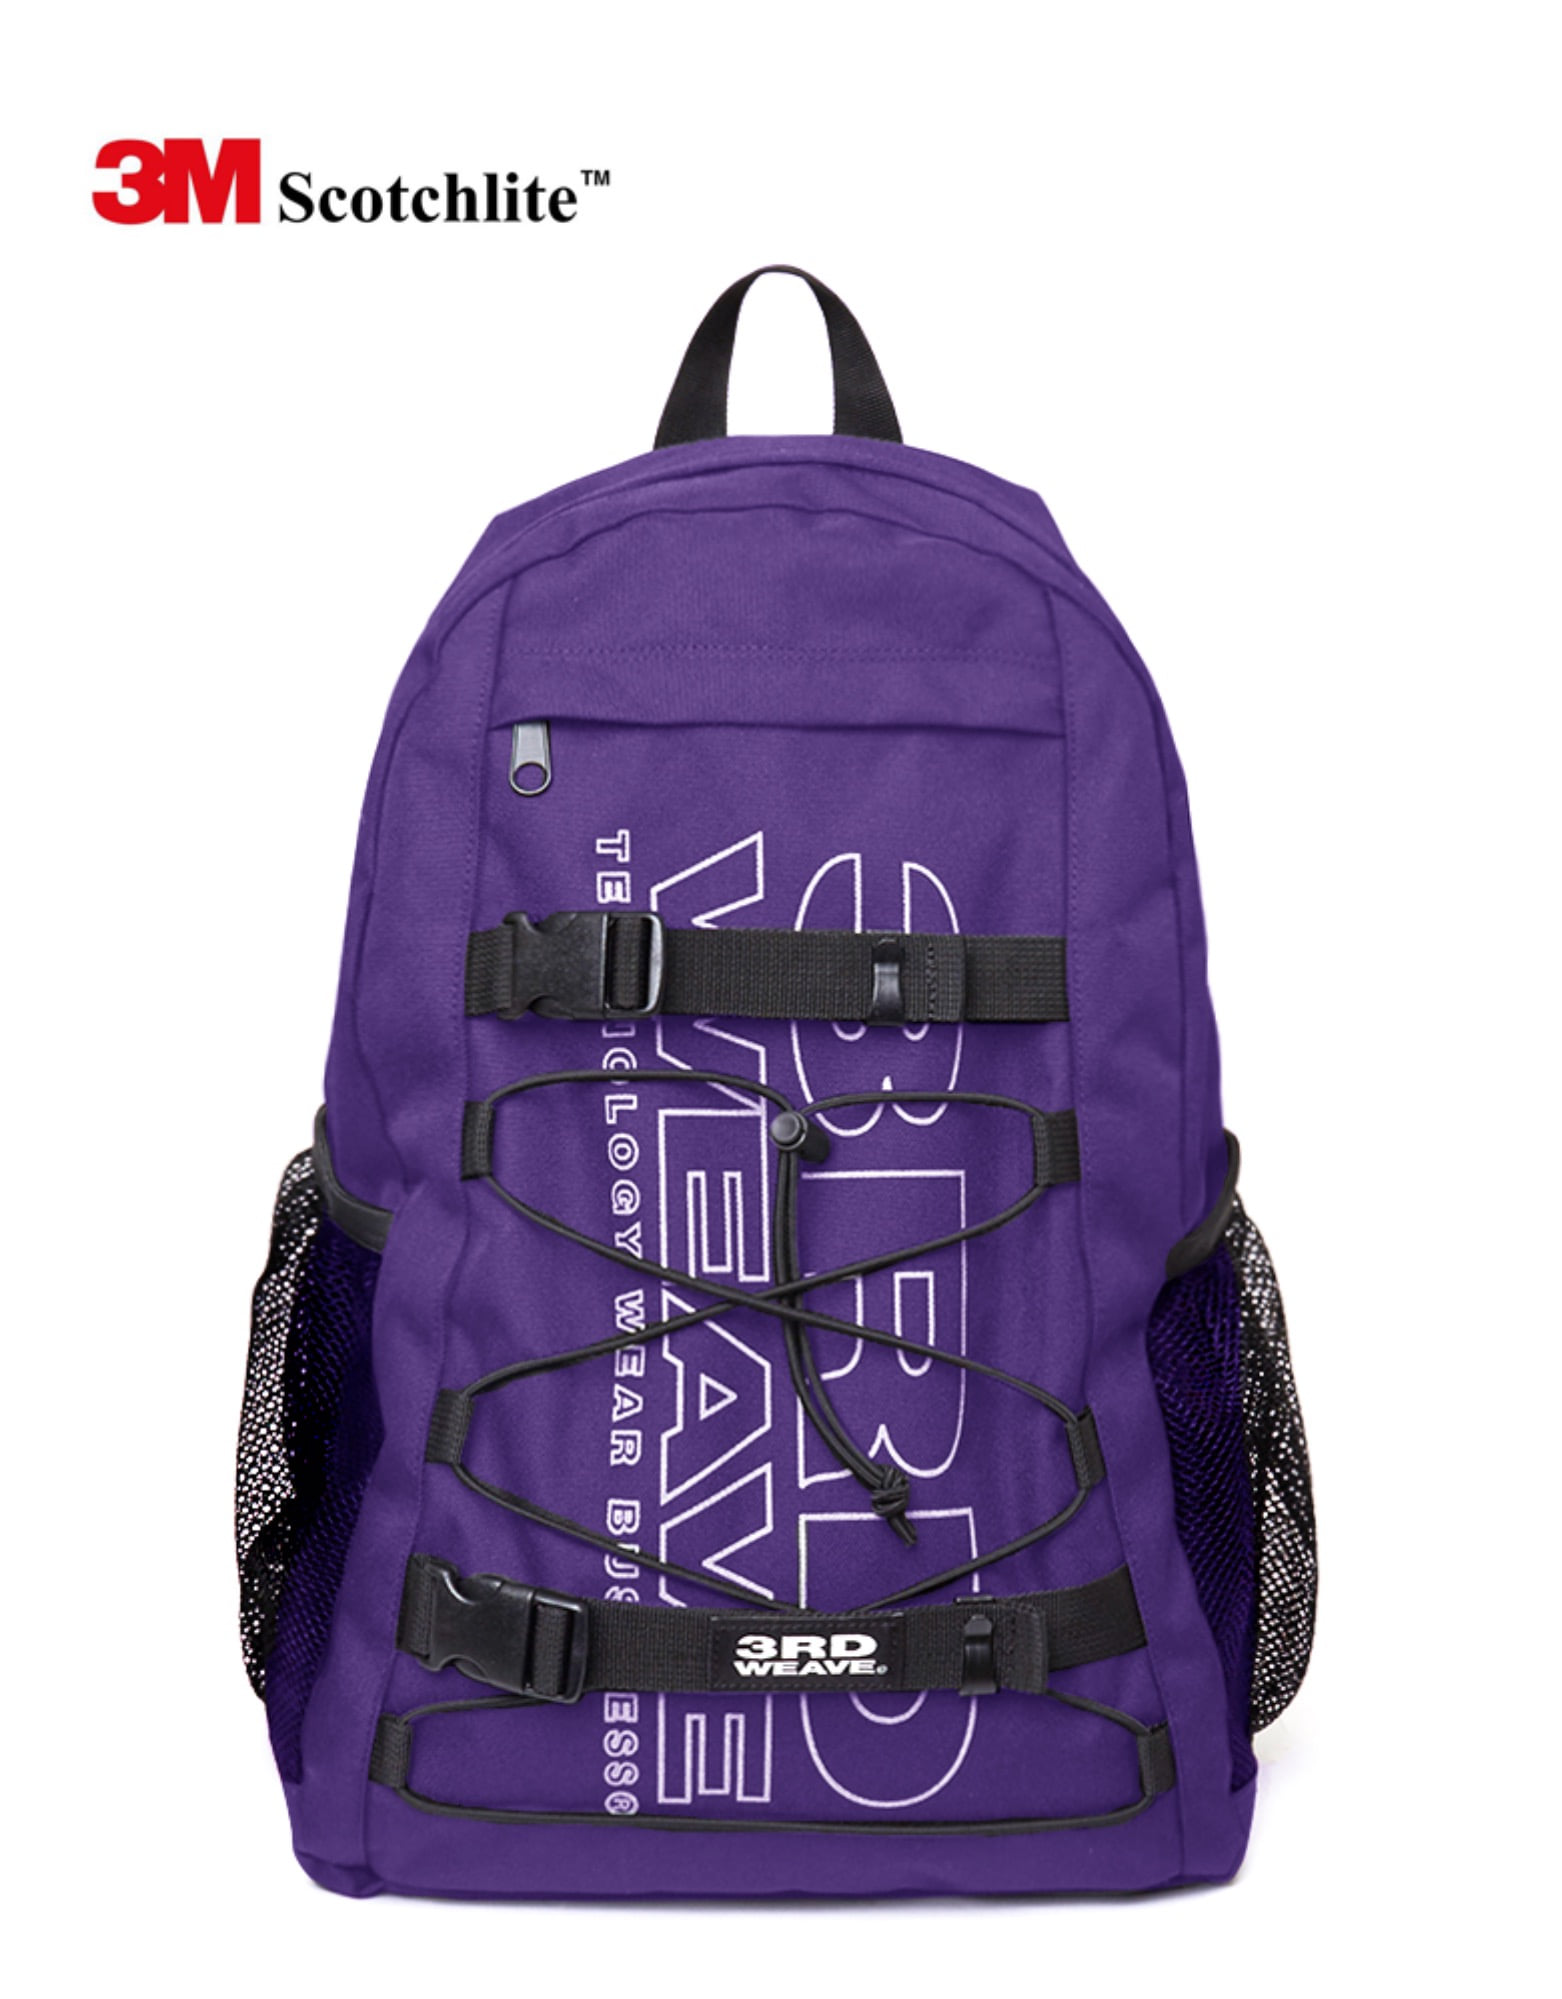 [36%] 3M SCOTCHLITE™ BACKPACK / PURPLE